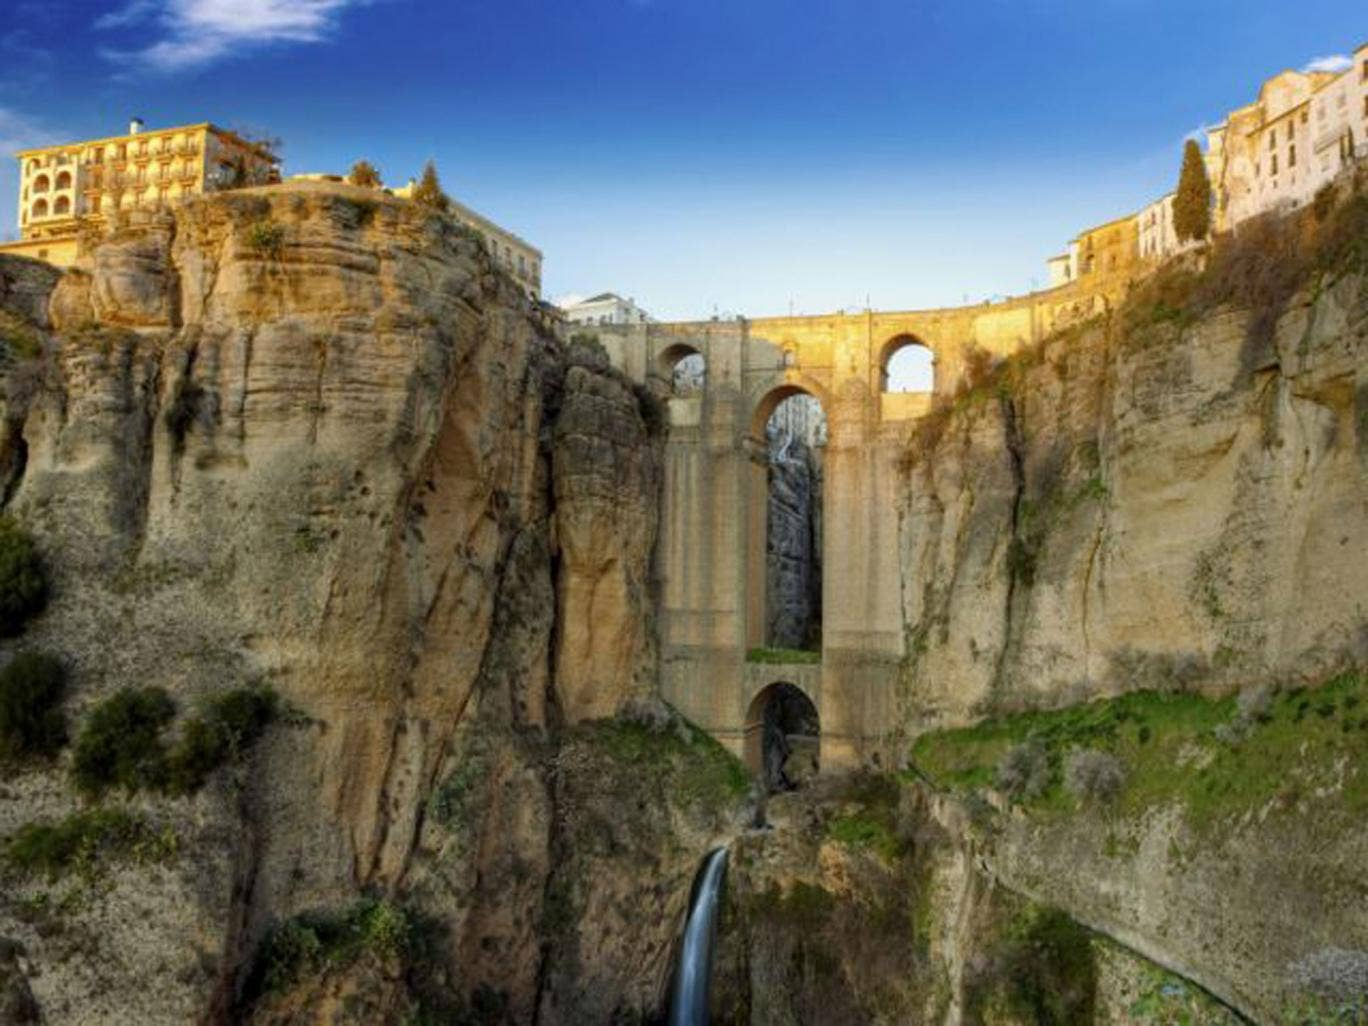 High point: visitors love Ronda